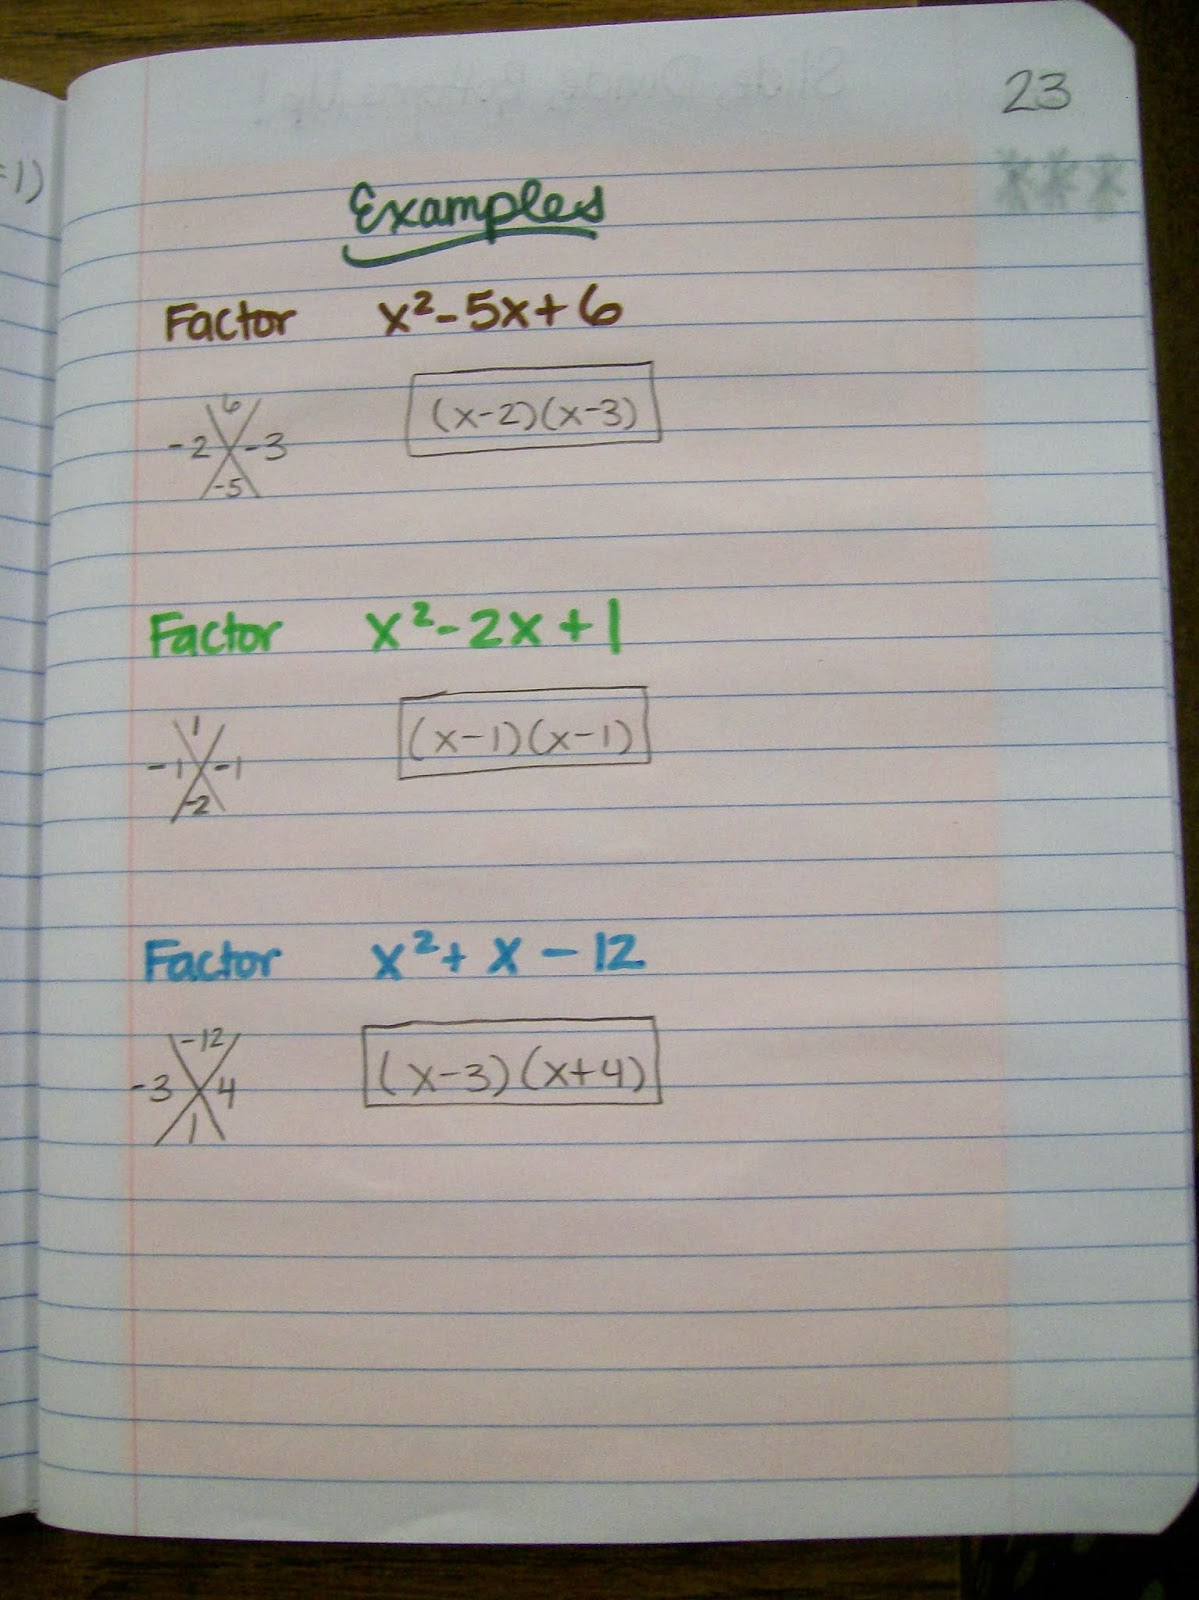 worksheet Factoring Binomials And Trinomials Worksheet math love algebra 1 inb pages polynomials and factoring examples of quadratic trinomials with a leading coefficient 1